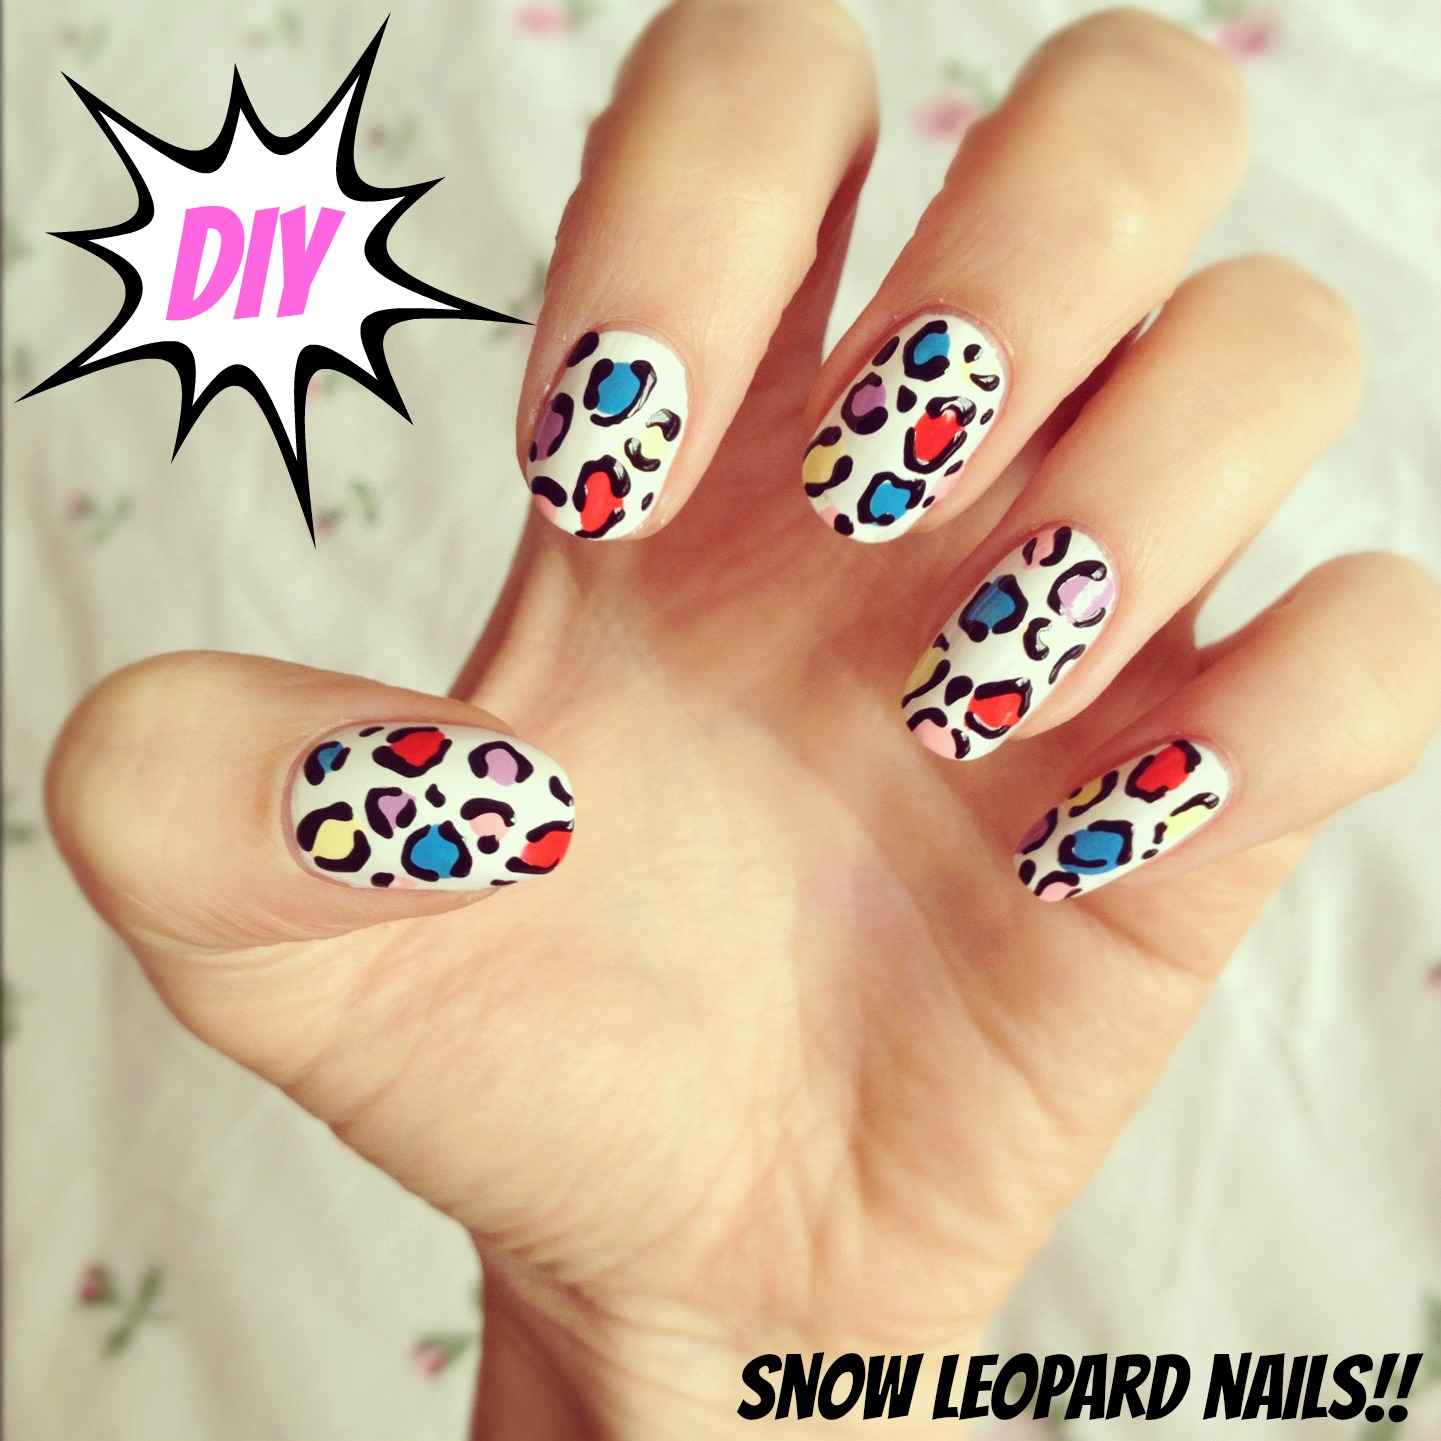 Pics Of Nail Art: DIY Snow Leopard Nail Art!